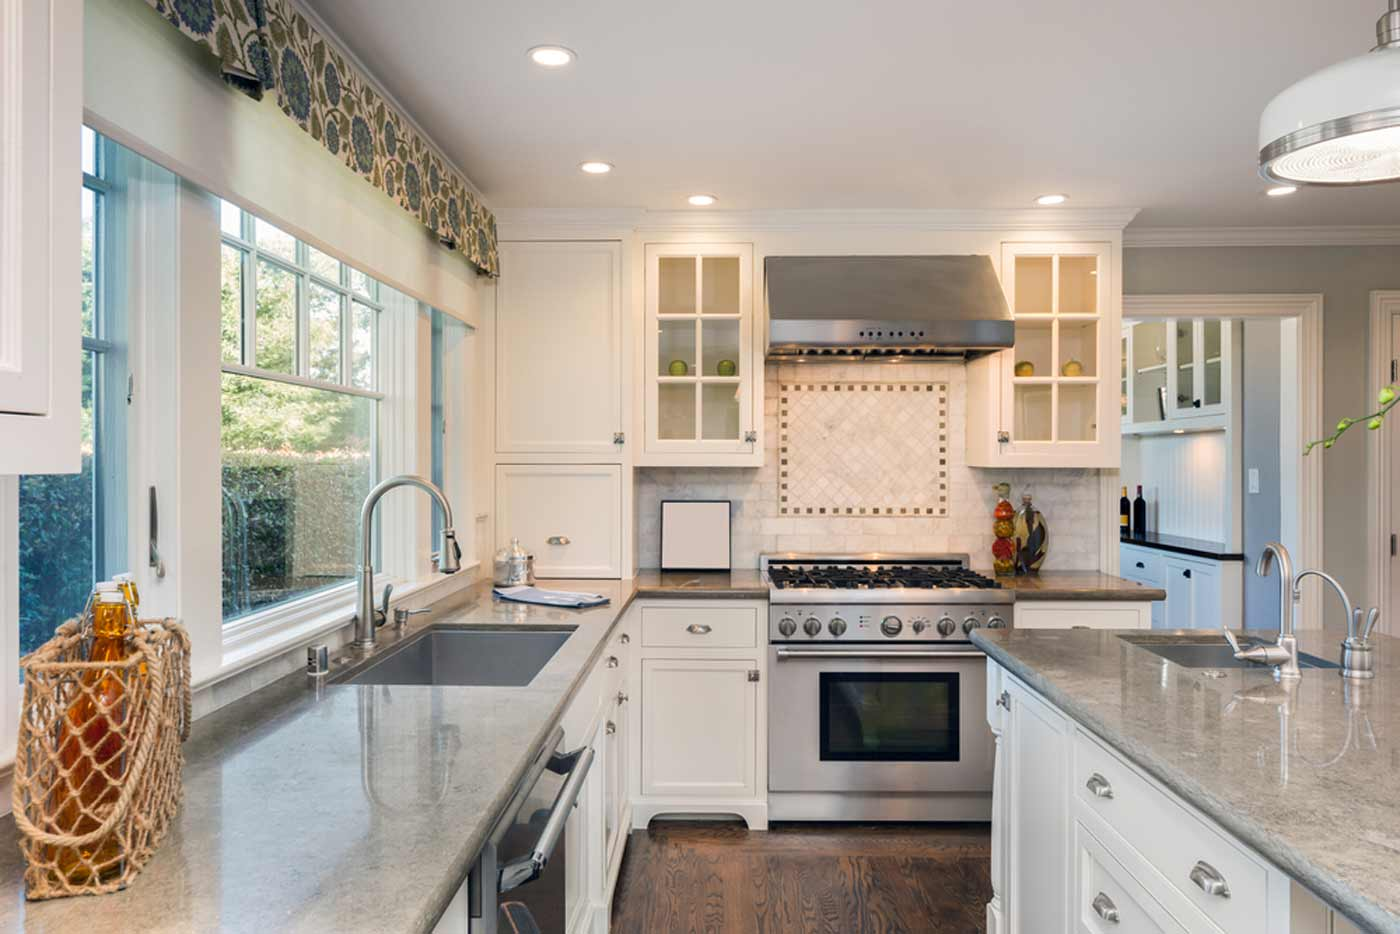 Orange County Plumbing repair in this Kitchen